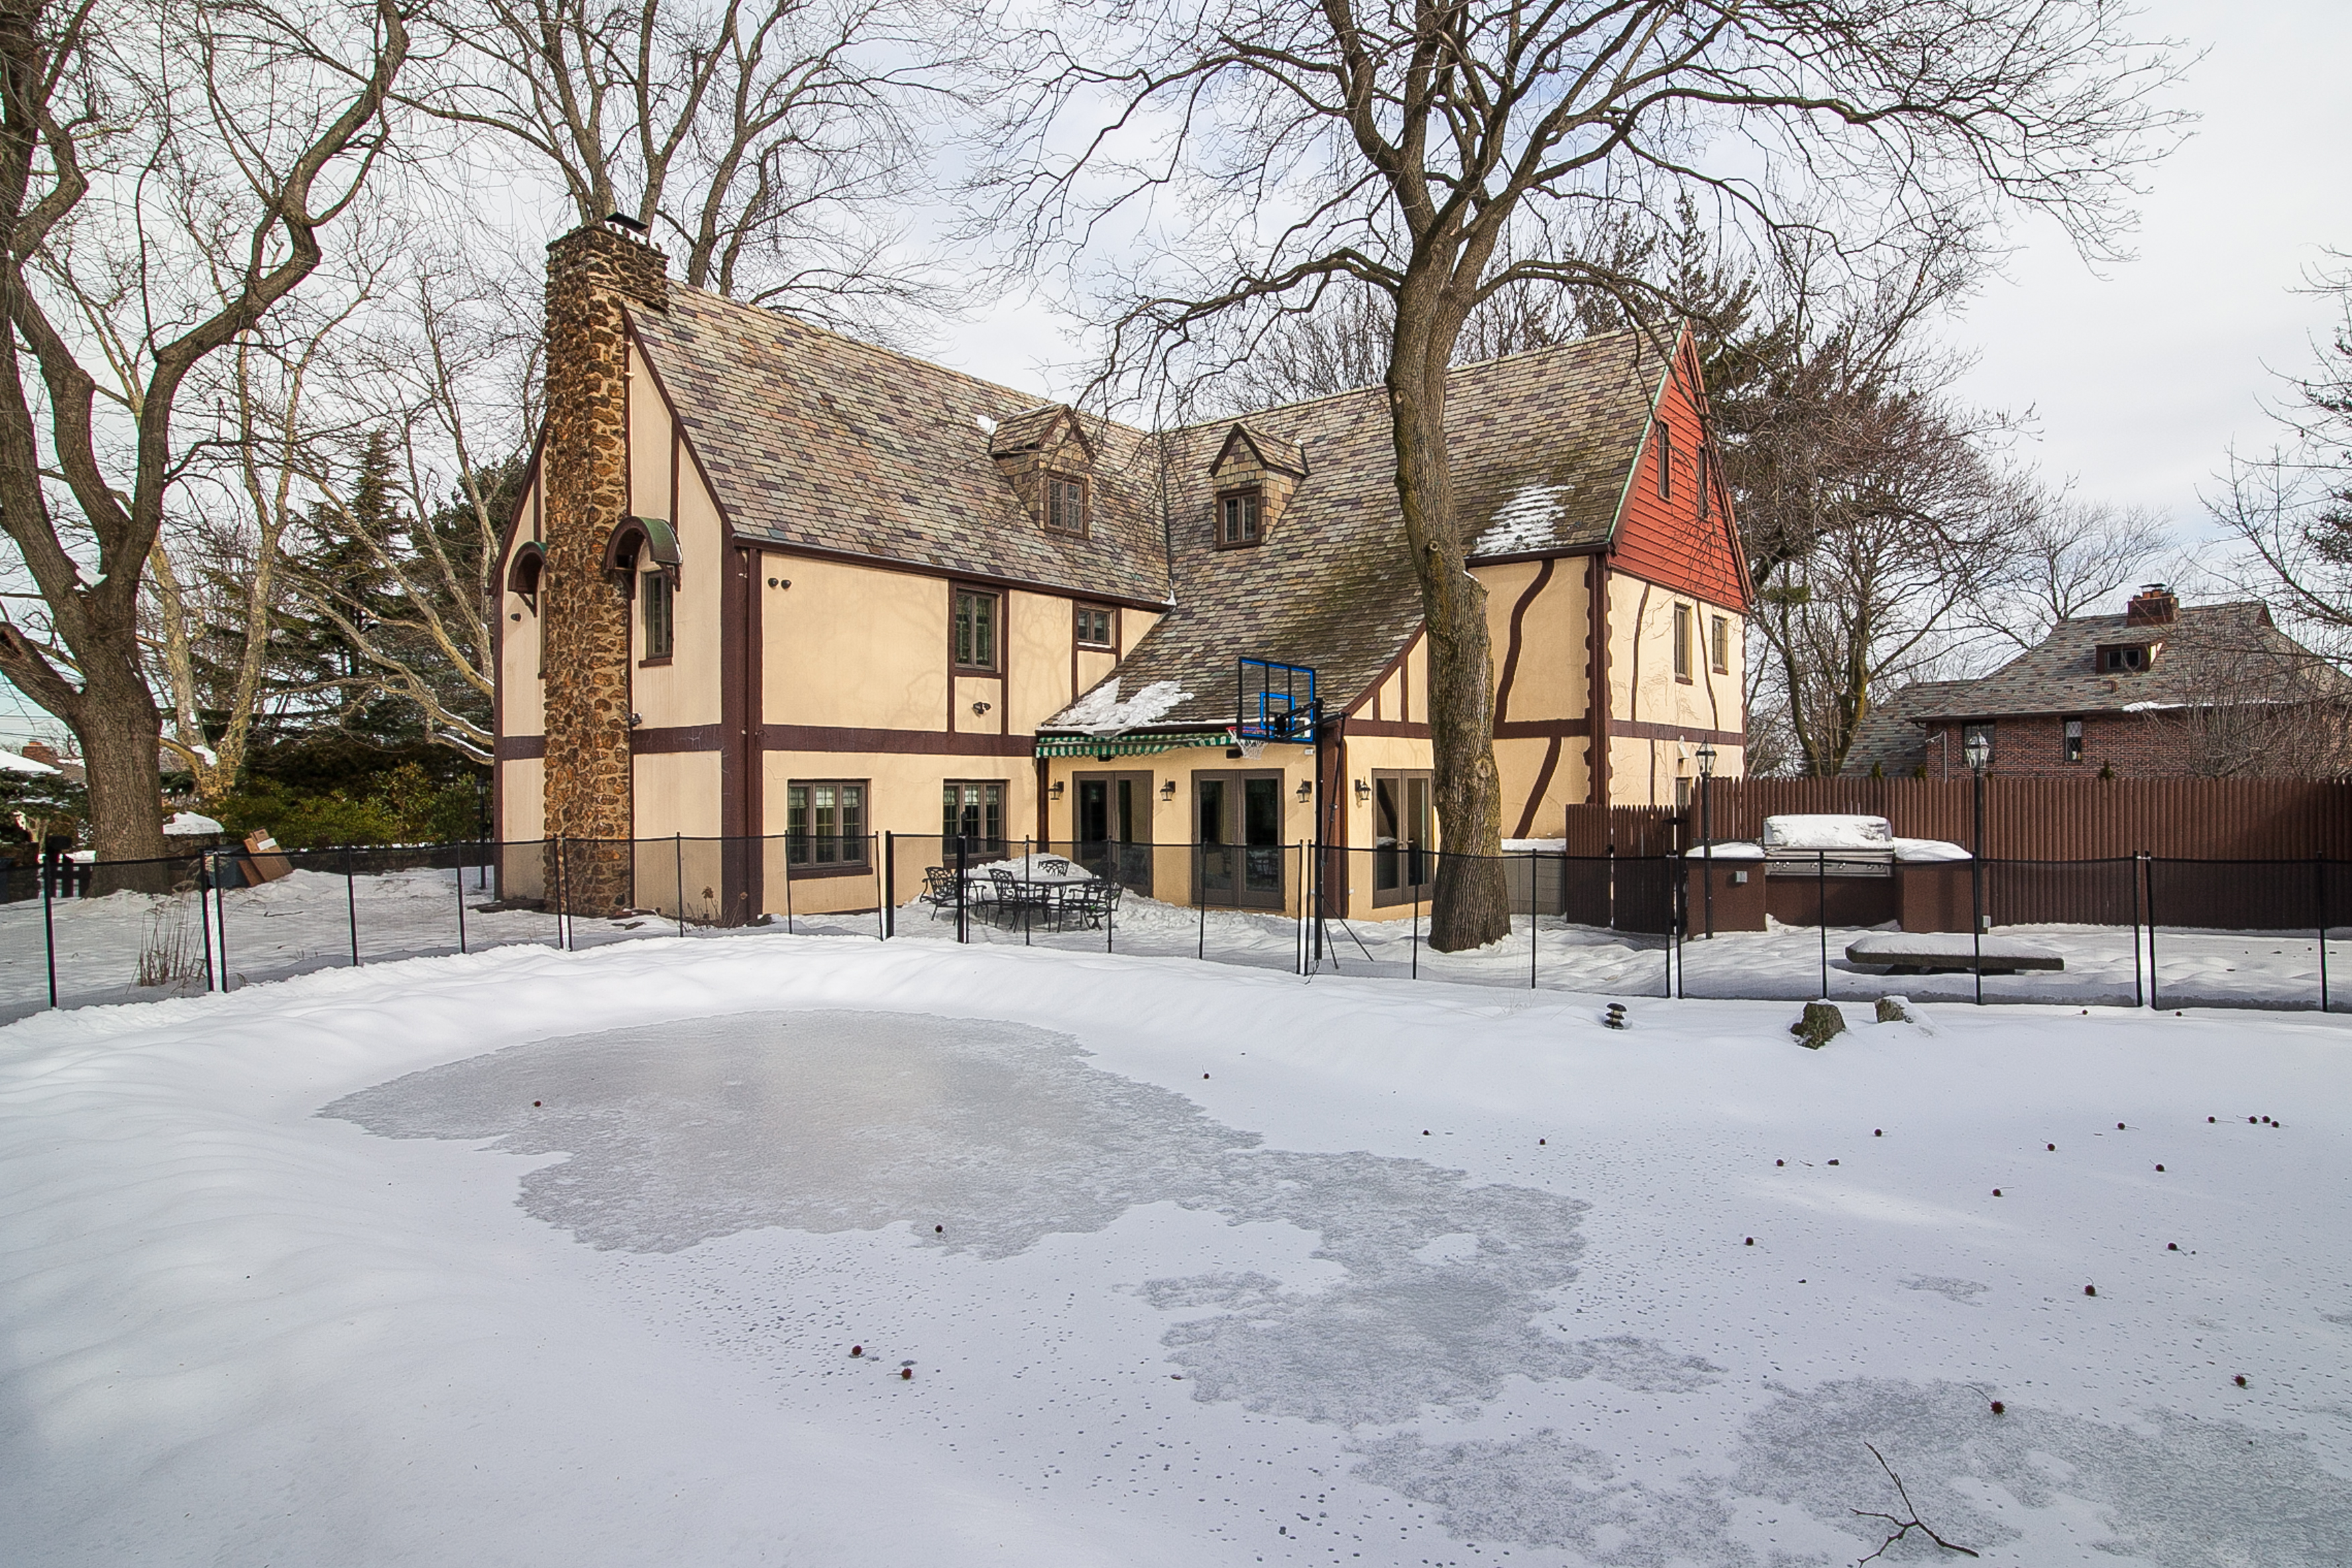 House from 'The Godfather' for sale